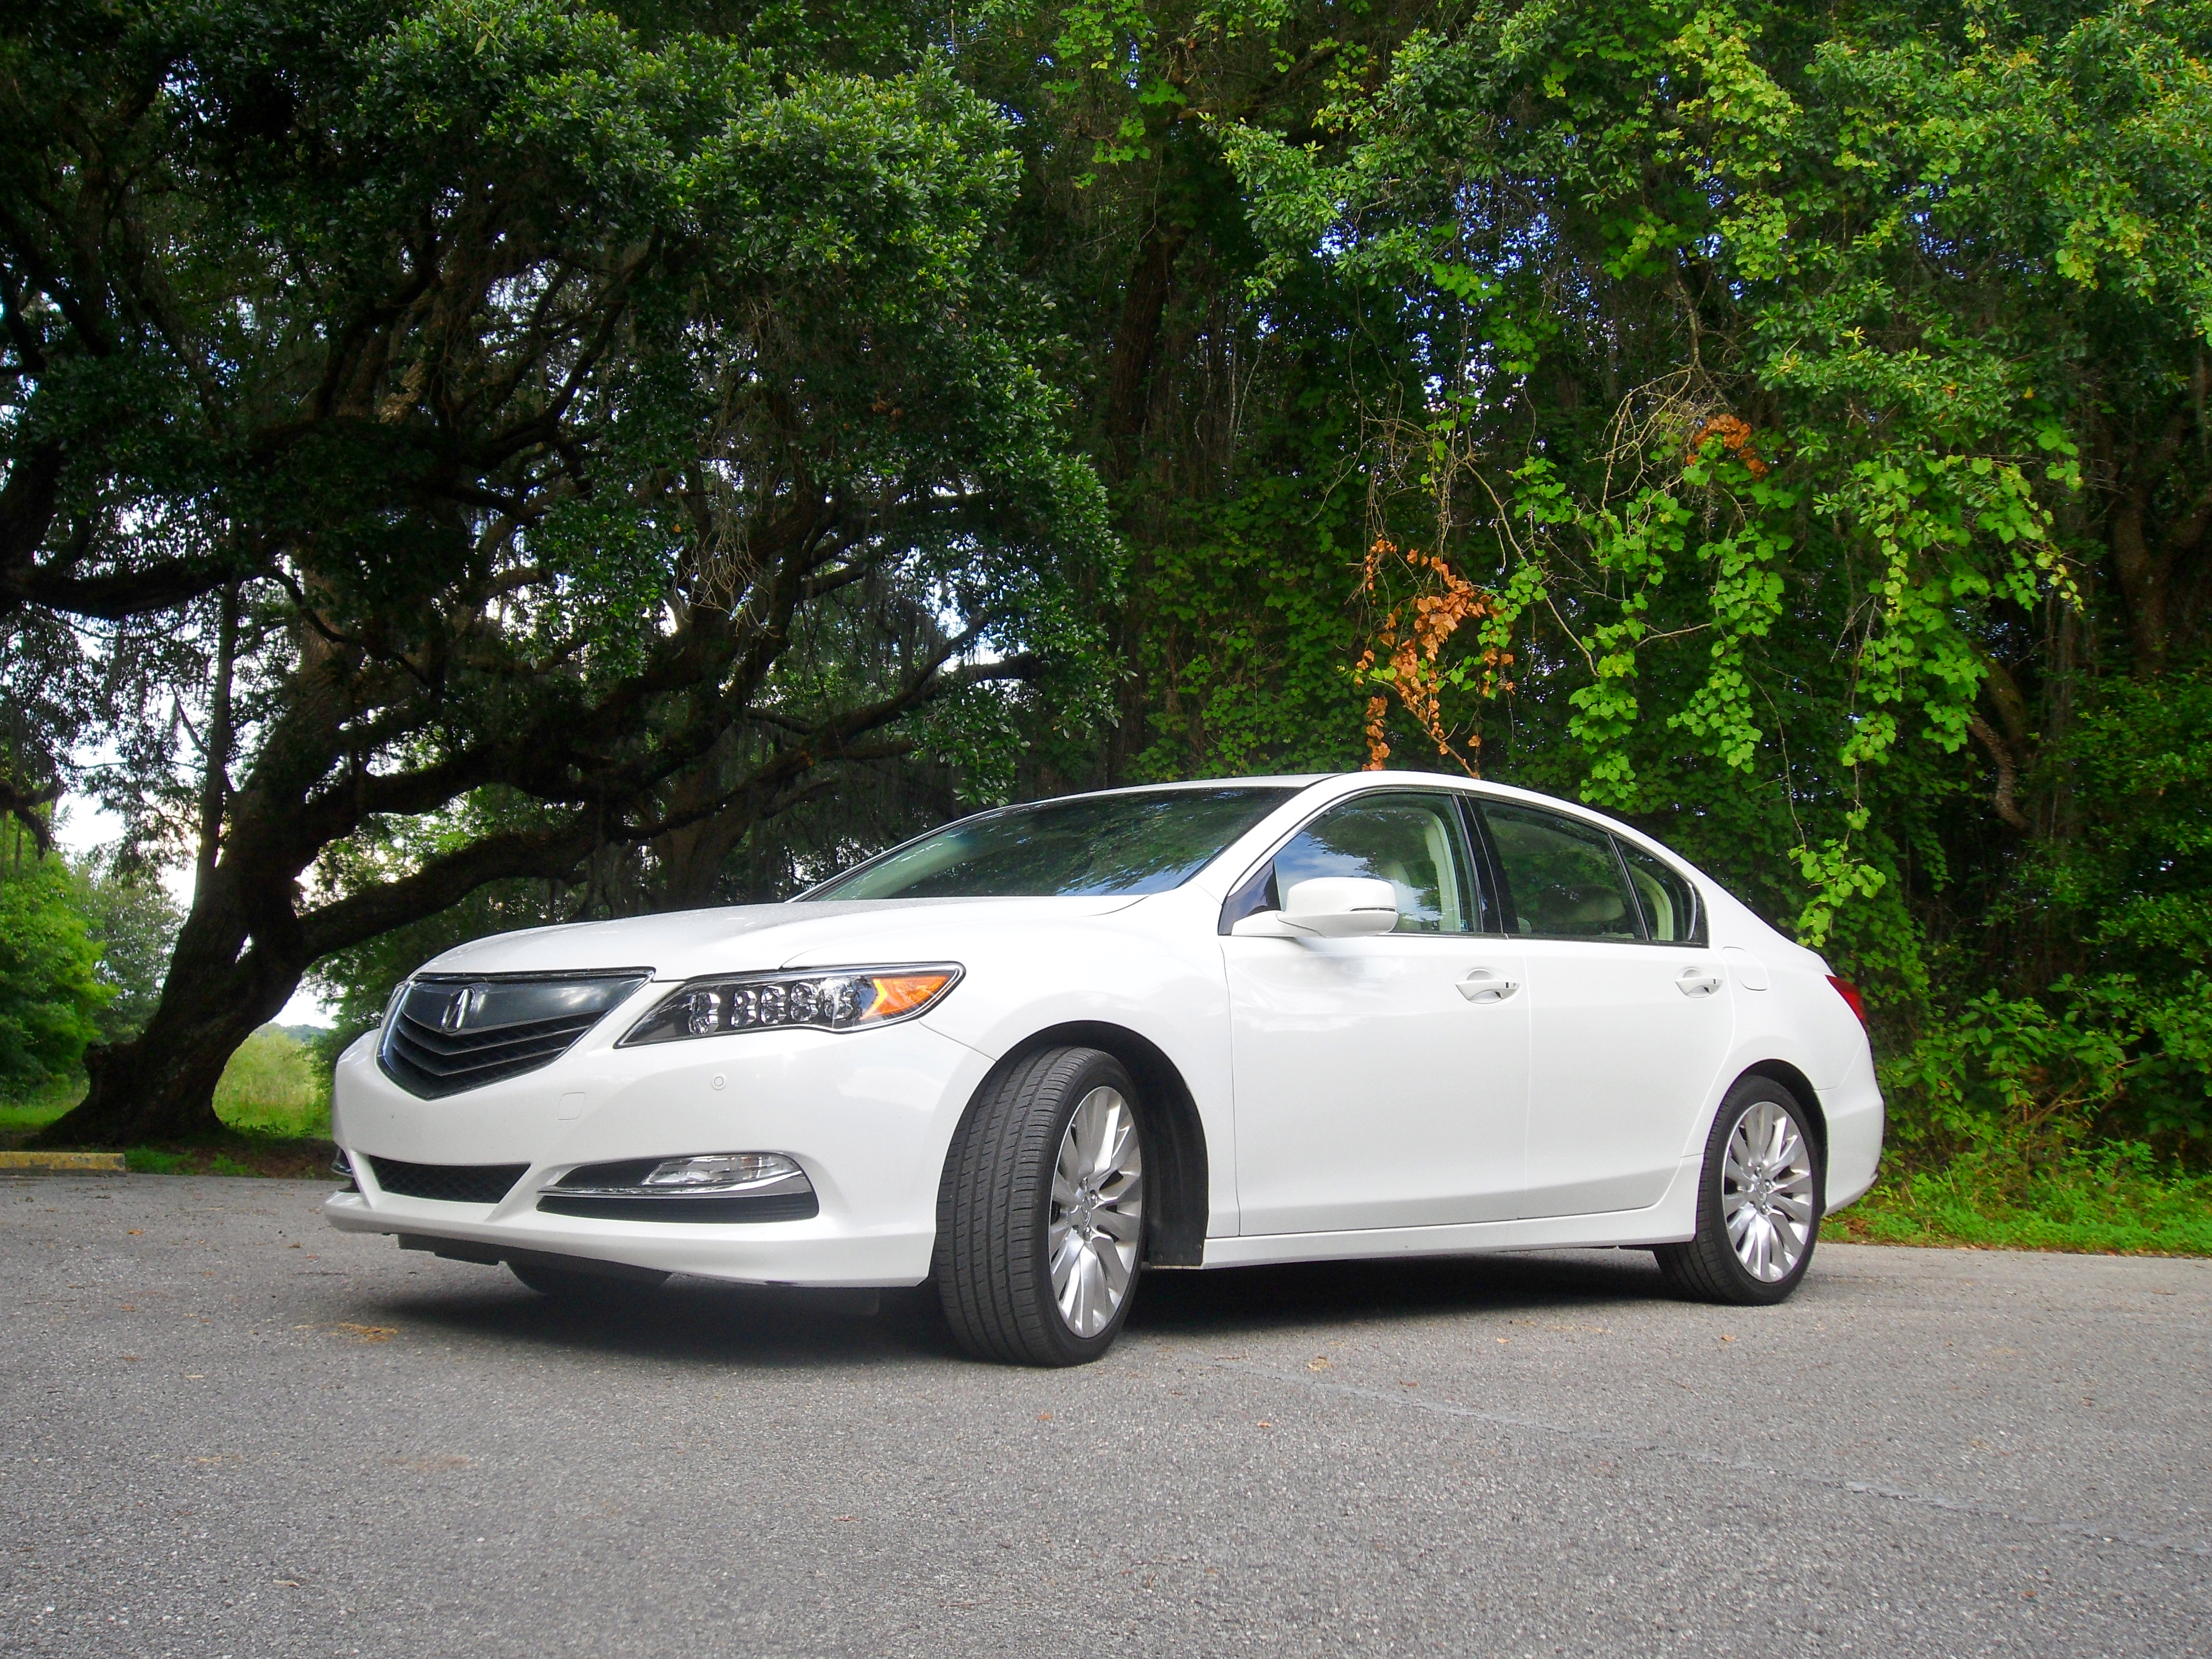 2014 acura rlx advance driven review gallery top speed. Black Bedroom Furniture Sets. Home Design Ideas